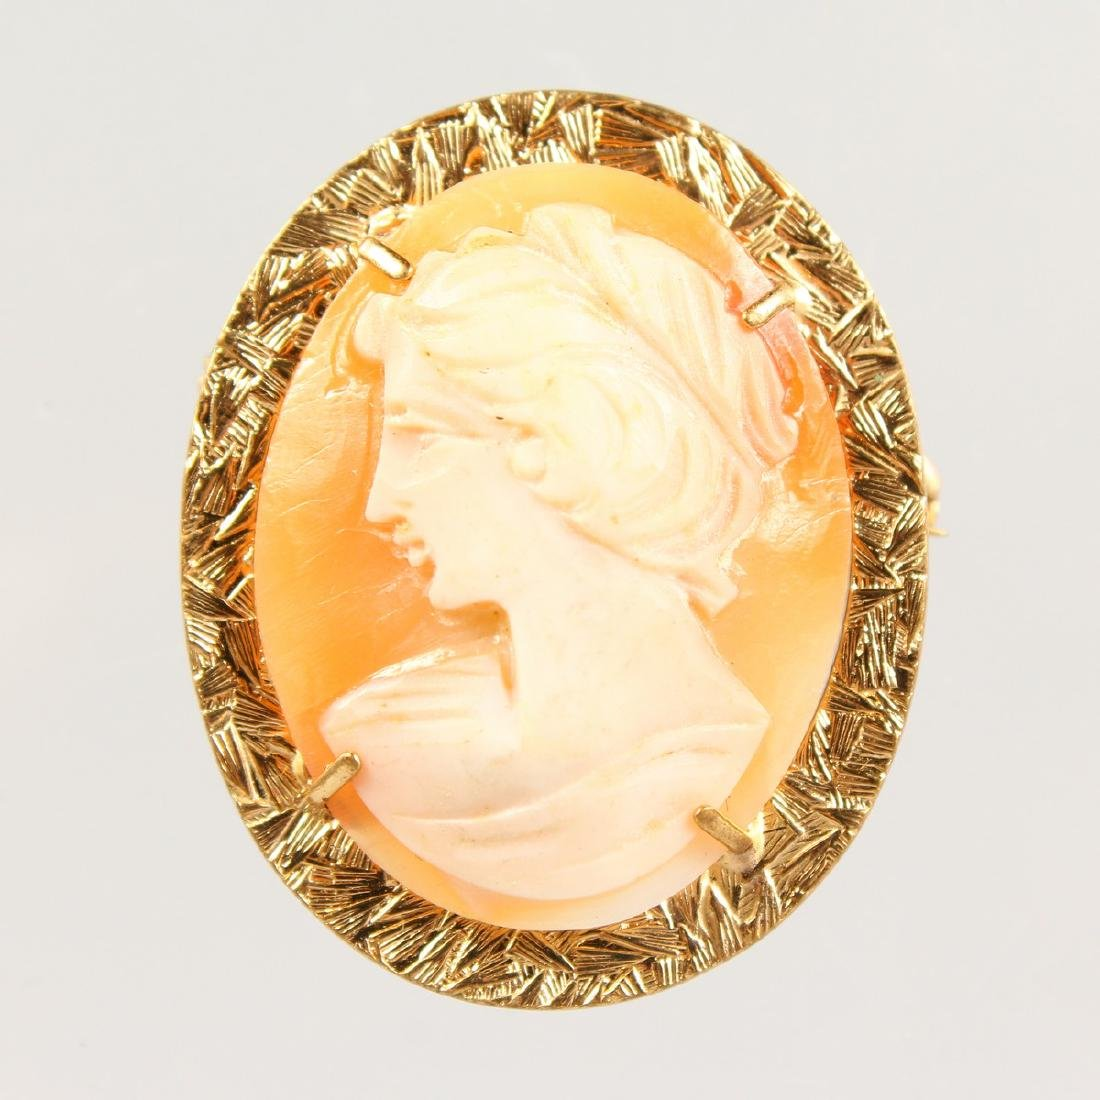 A GOLD CAMEO BROOCH.